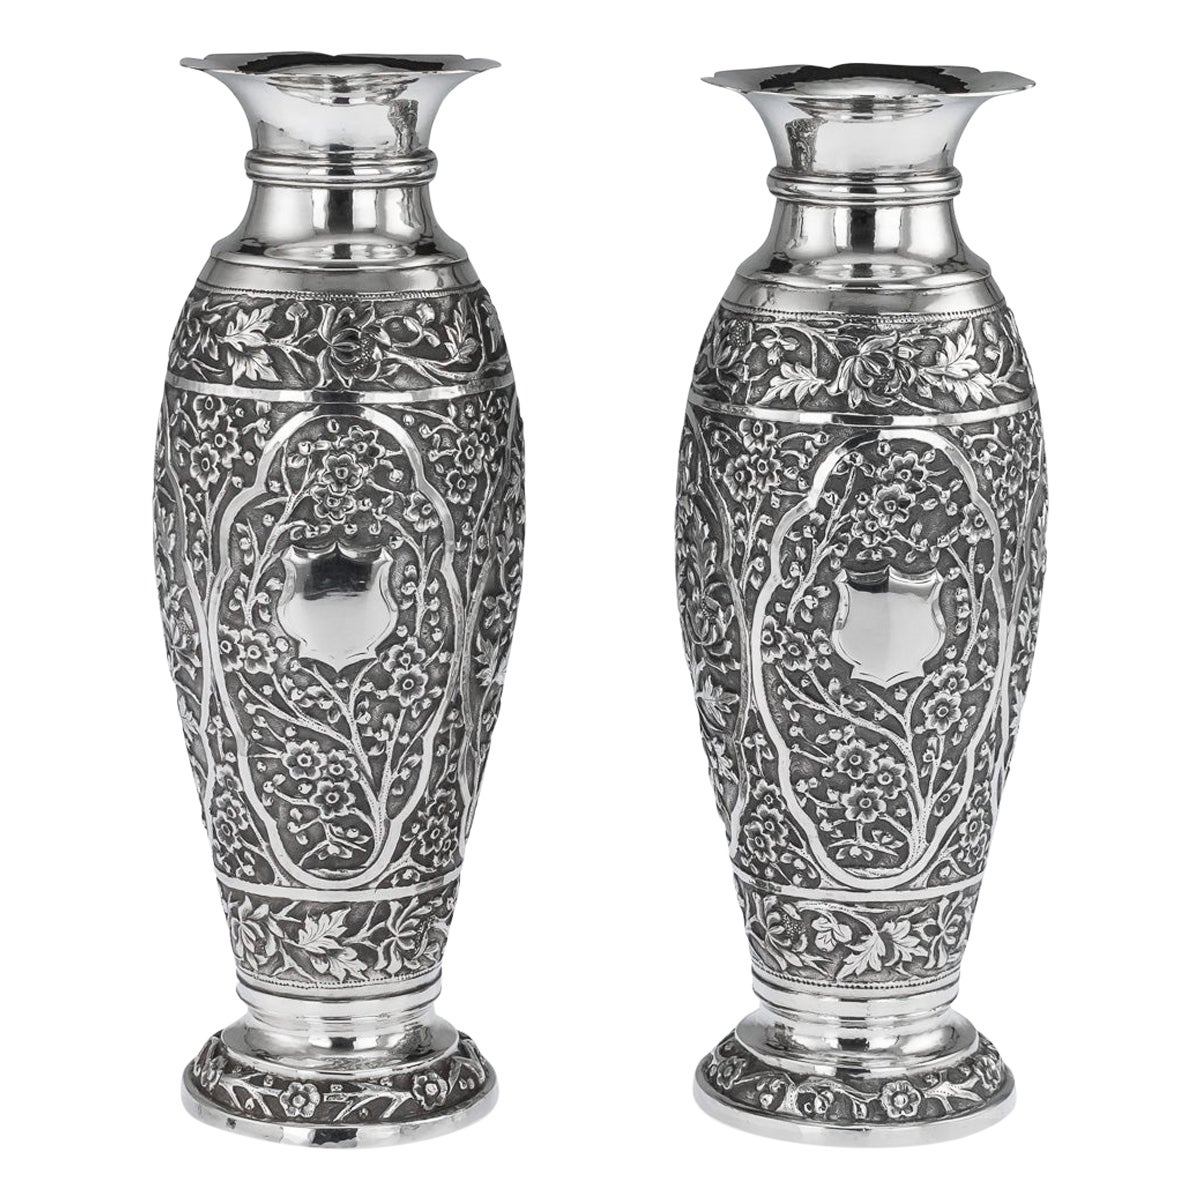 19th Century Chinese Export Solid Silver Pair of Vases, circa 1890